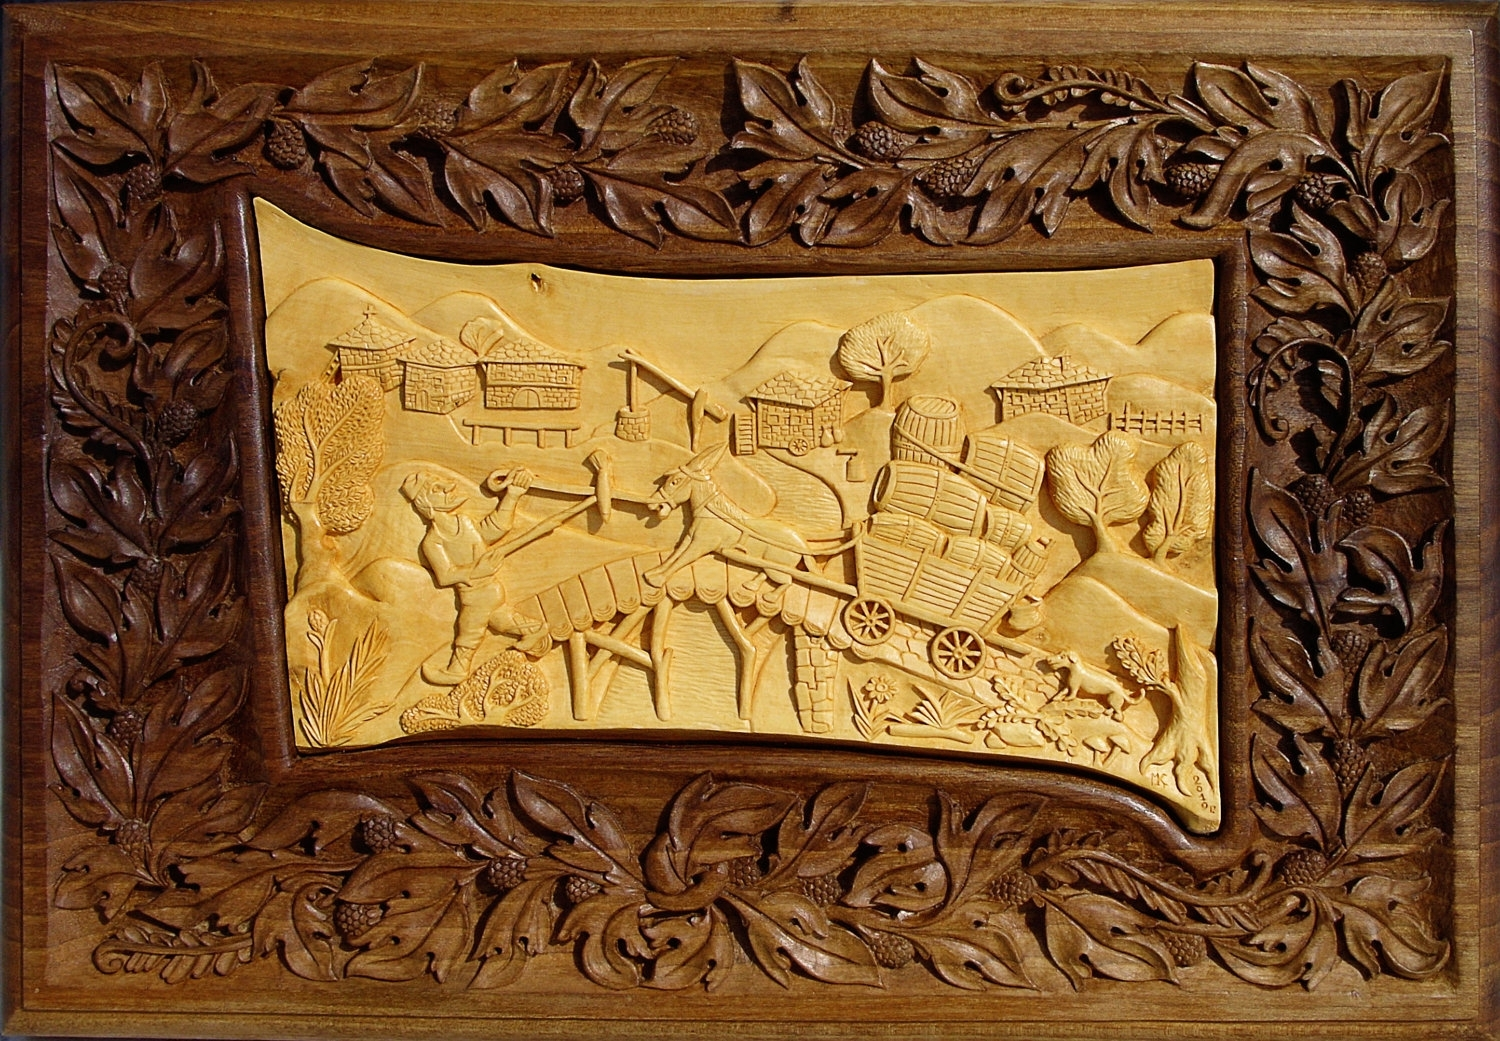 Wall Art Wood Carving Art Wall Decor Rustic Cabin By, Wood Carving throughout Carved Wood Wall Art (Image 19 of 20)